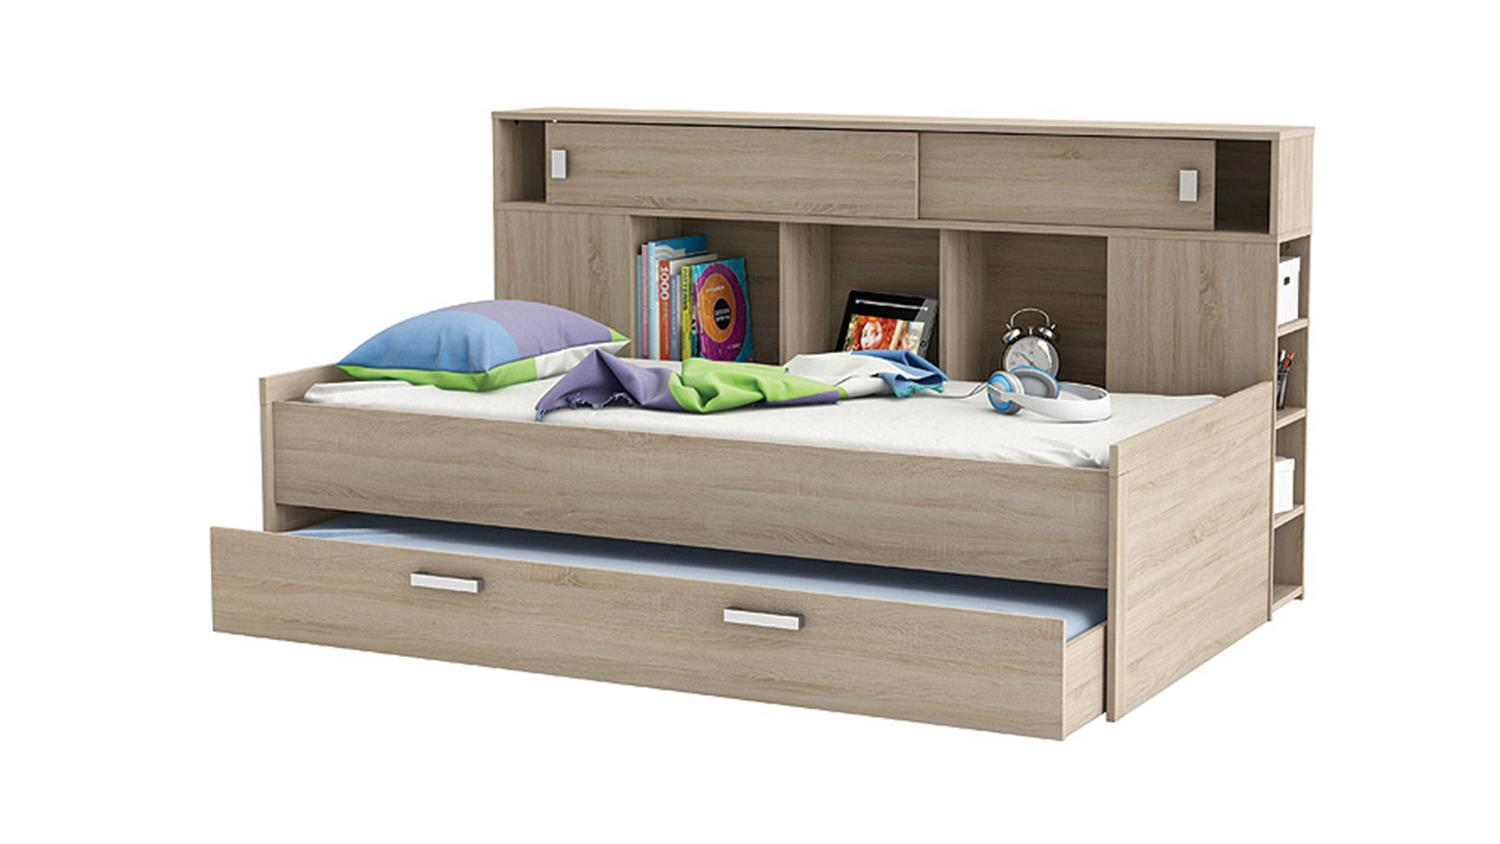 kinderbett mit bettkasten renato die neuesten. Black Bedroom Furniture Sets. Home Design Ideas